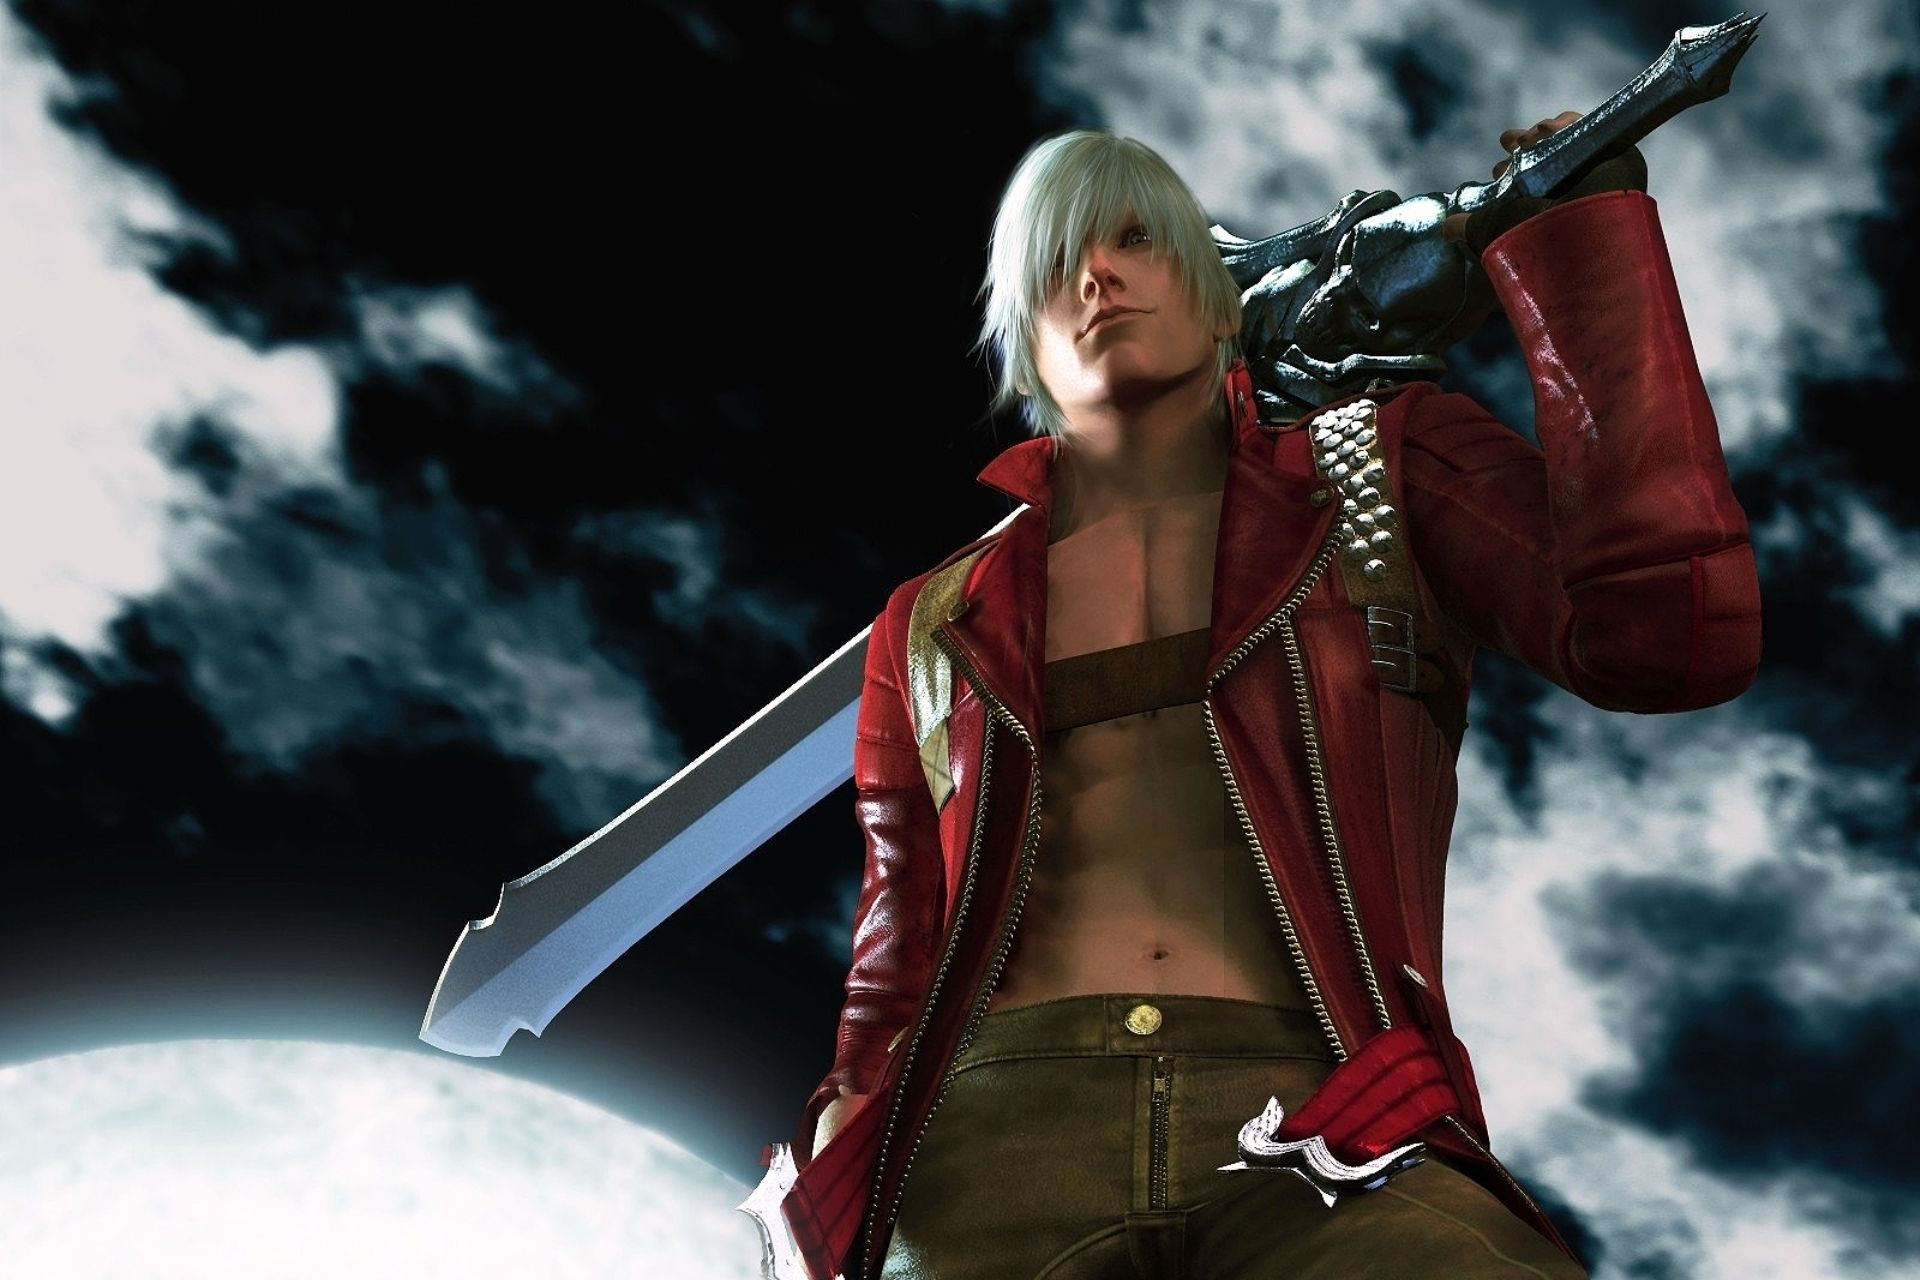 164215688_devil_may_cry_3_wallpapers.0.jpg